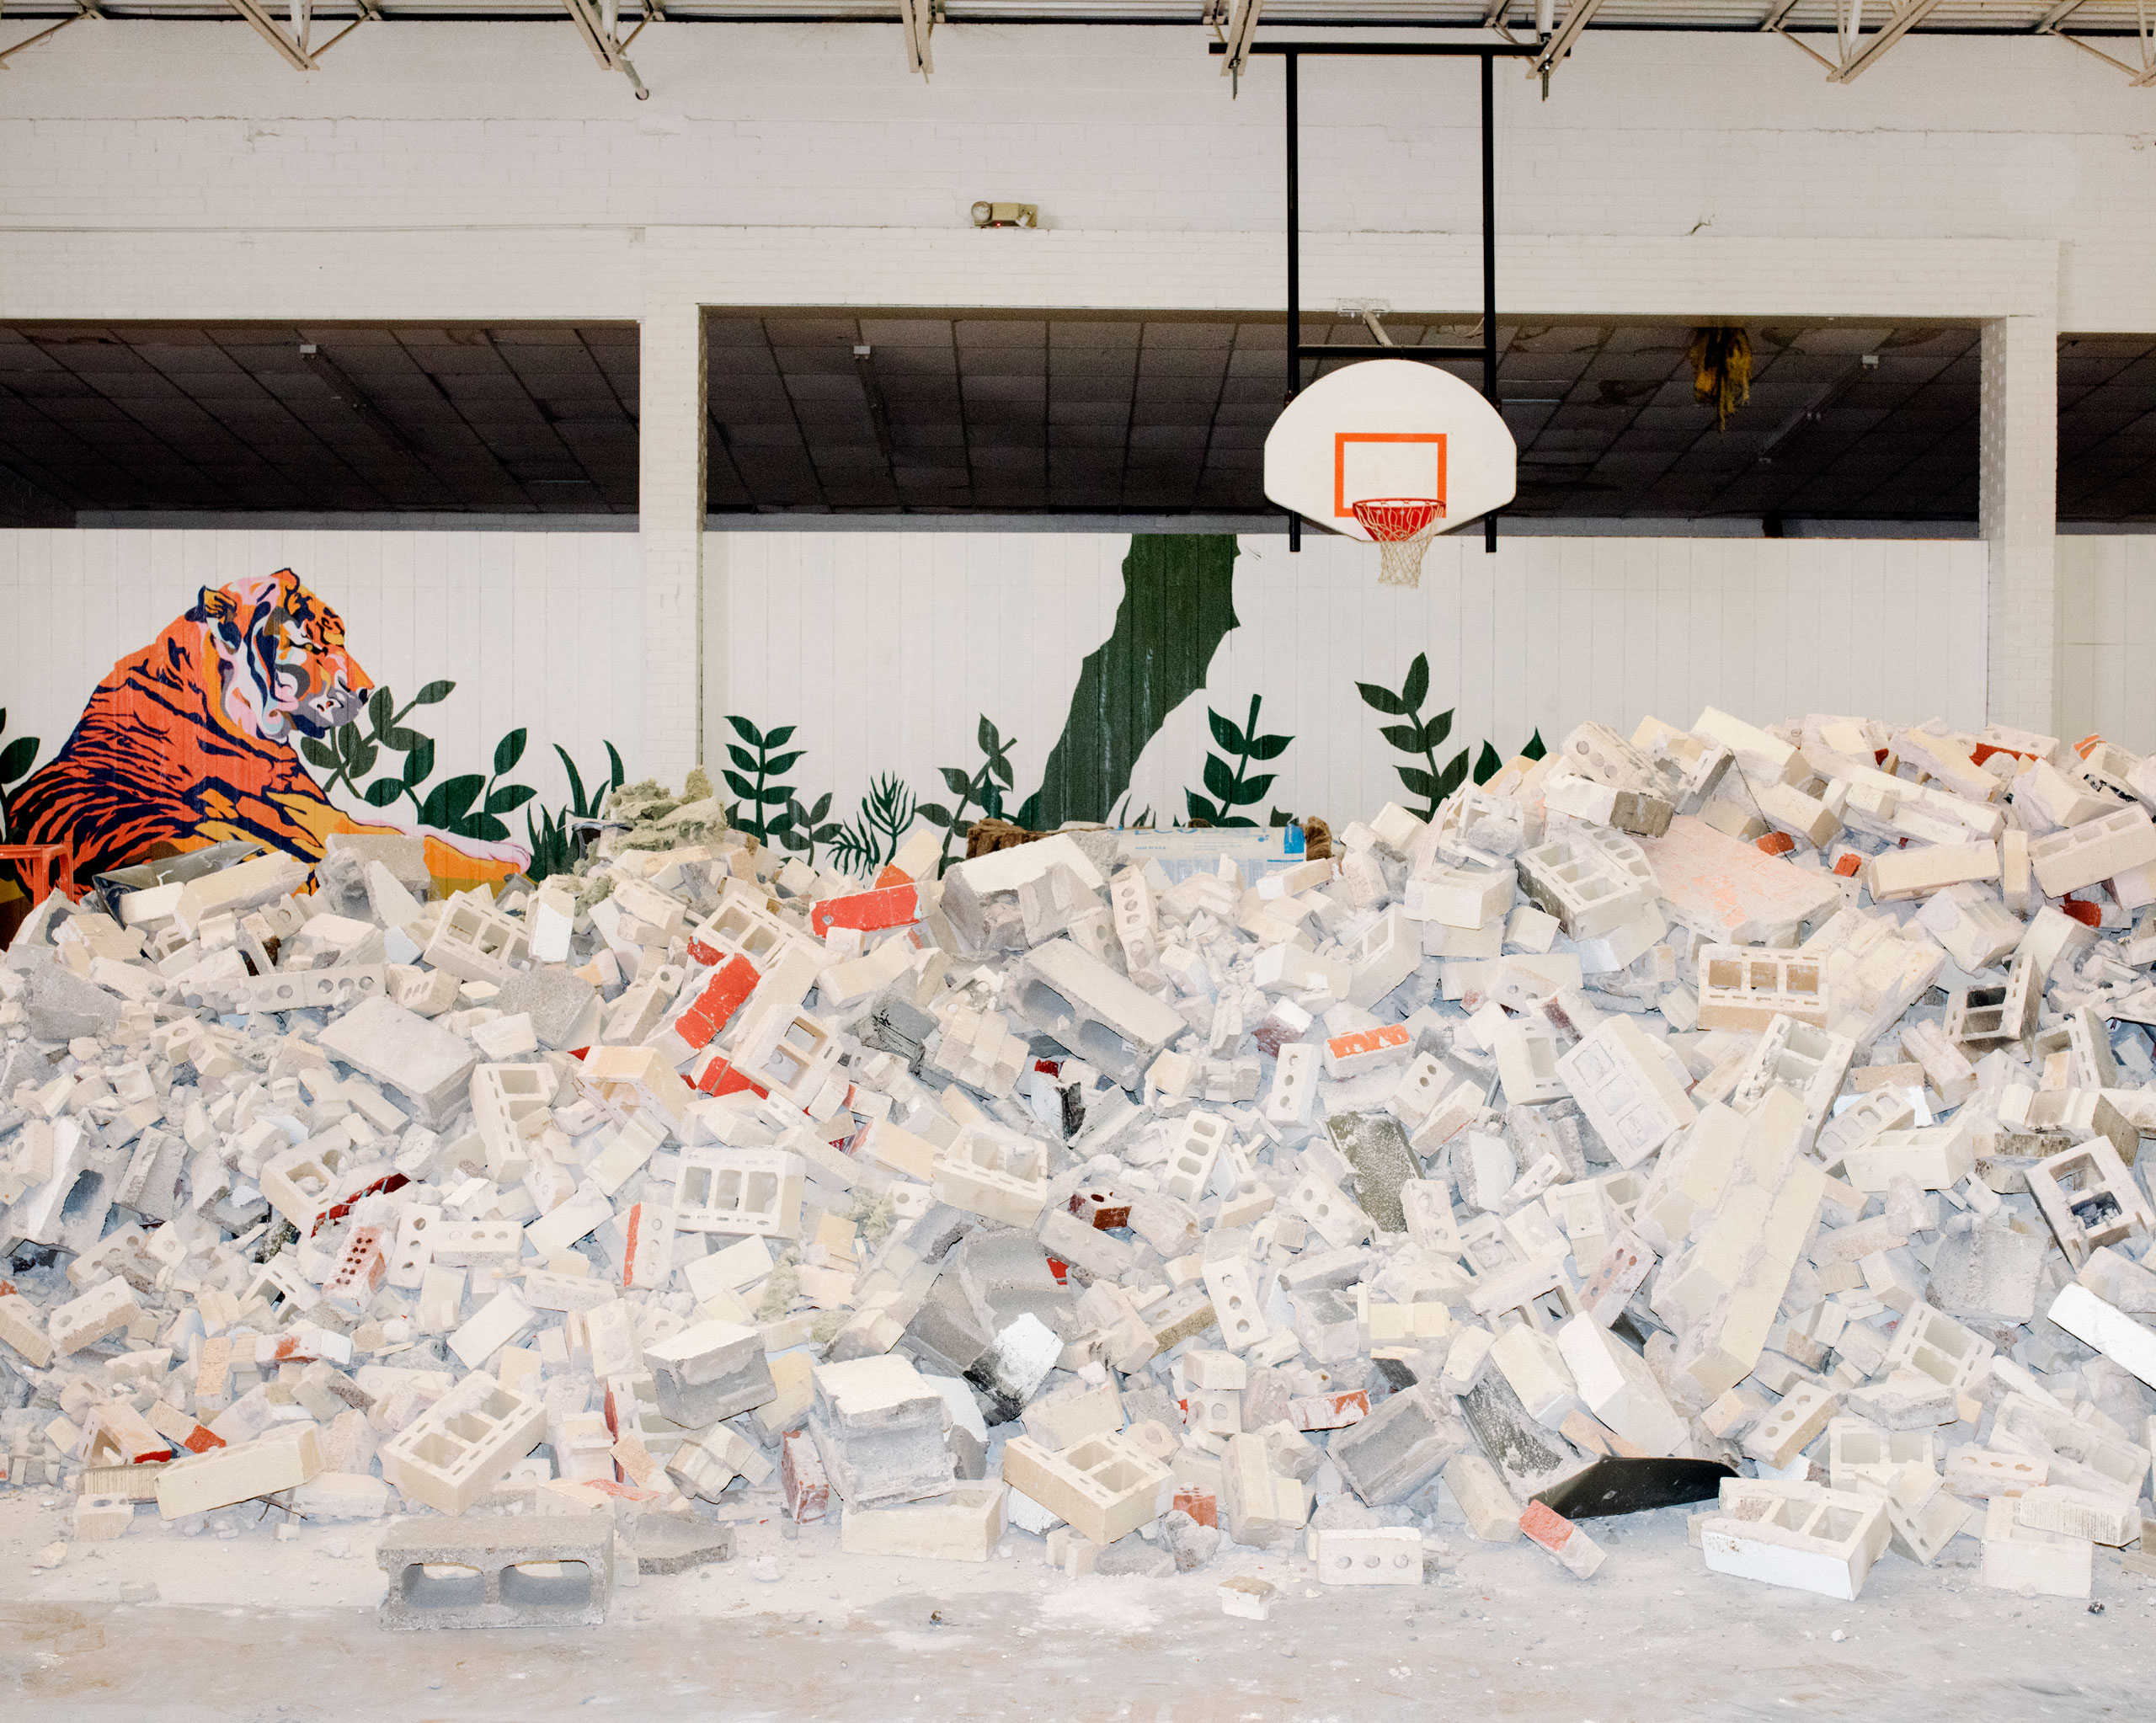 Cinder blocks left from demolition are piled in Crescent High School's gymnasium. An earthquake on July 28, 2015 destabilized the gymnasium's walls forcing the school to repair the entire structure, Crescent, OK